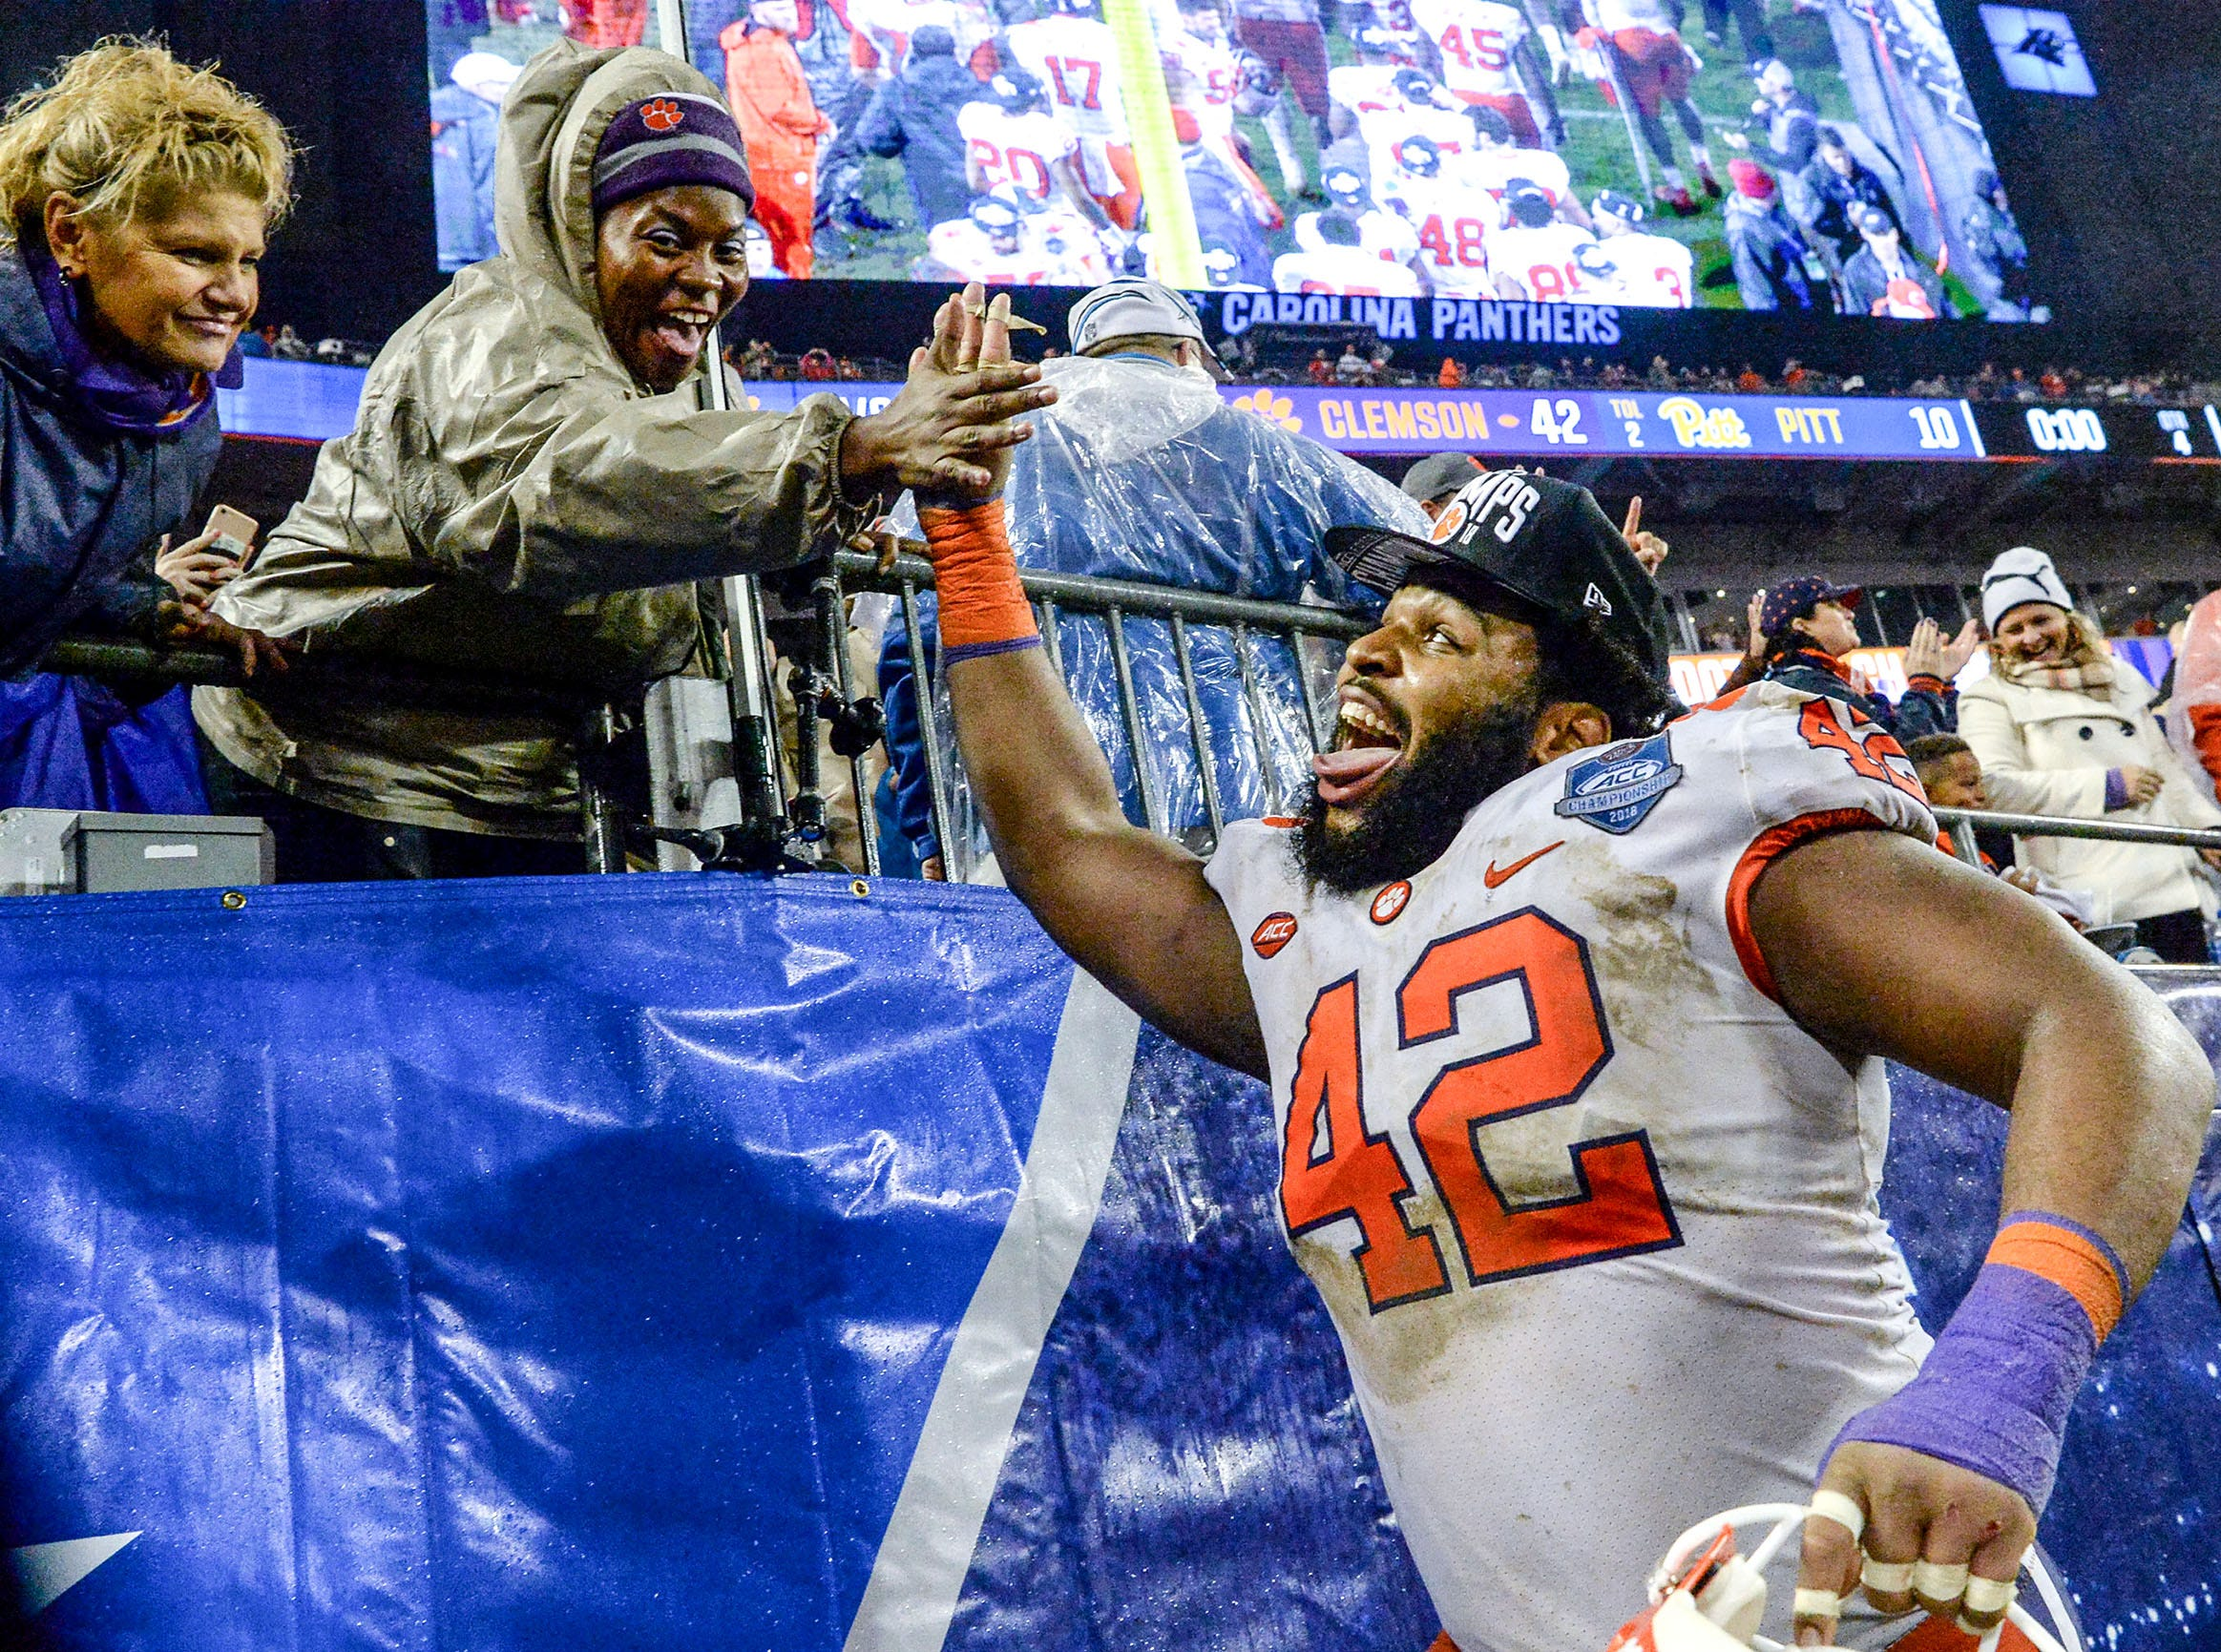 Clemson defensive lineman Christian Wilkins (42) celebrates with fans a 42-10 win over Pittsburgh after the game at the Dr. Pepper ACC football championship at Bank of America Stadium in Charlotte, N.C. on Saturday, December 1, 2018.